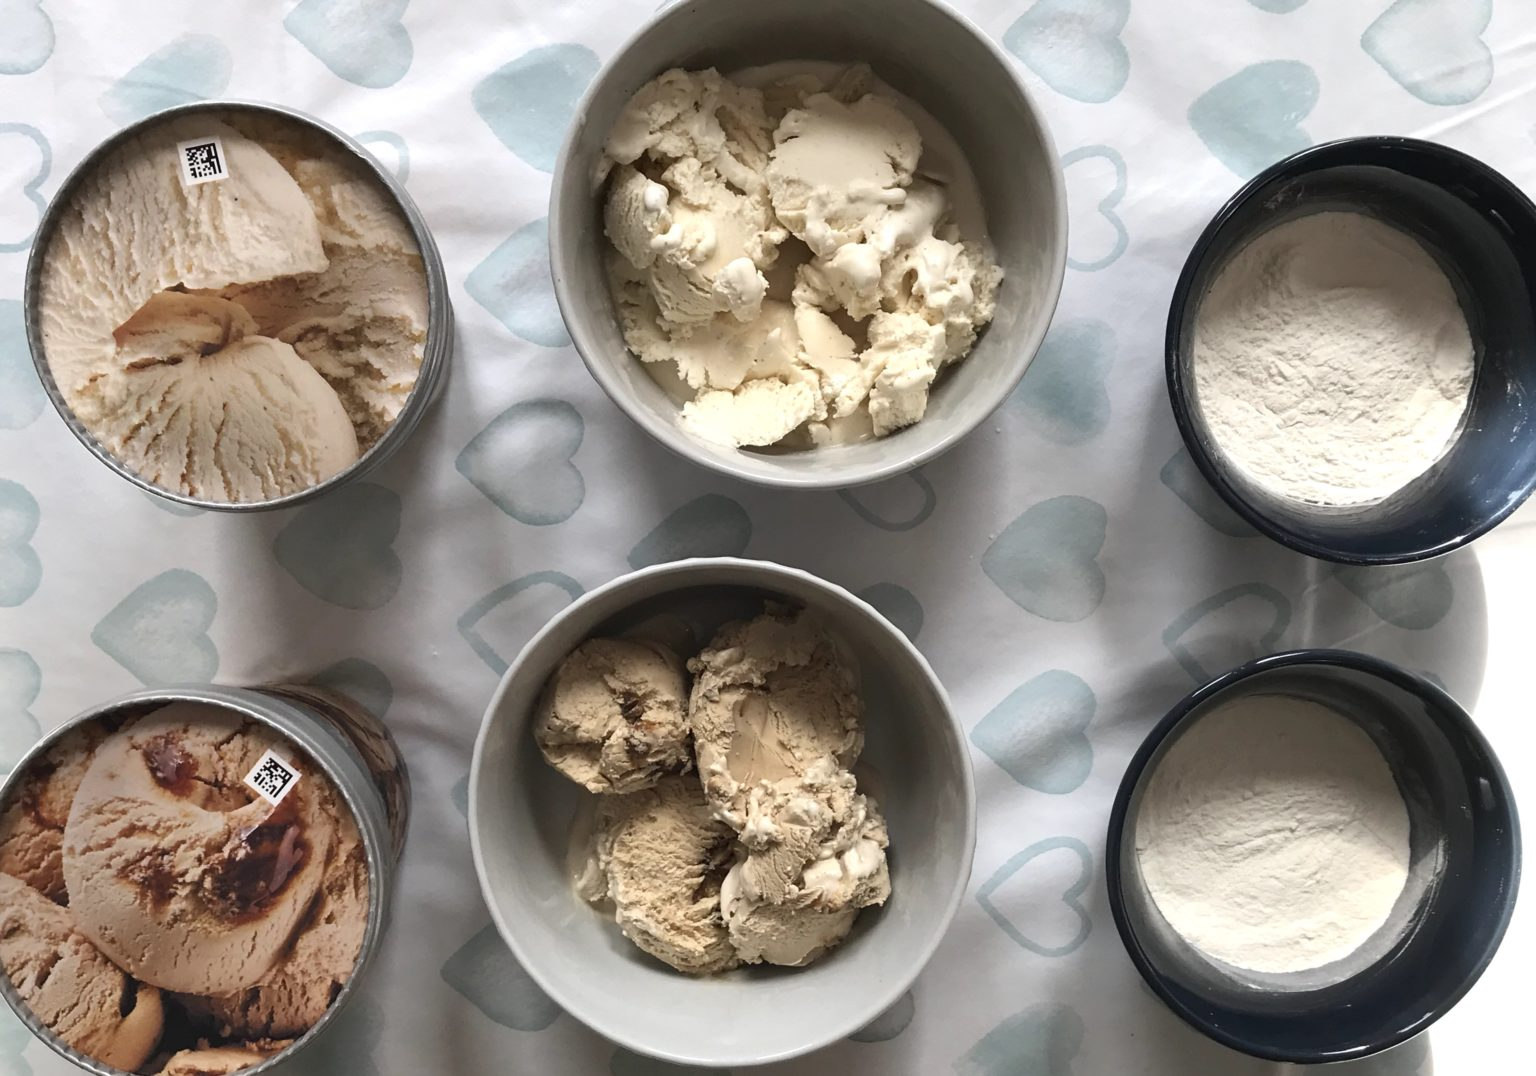 Ice cream and flour is all you need to make a cake that 'tastes like Disneyland'.